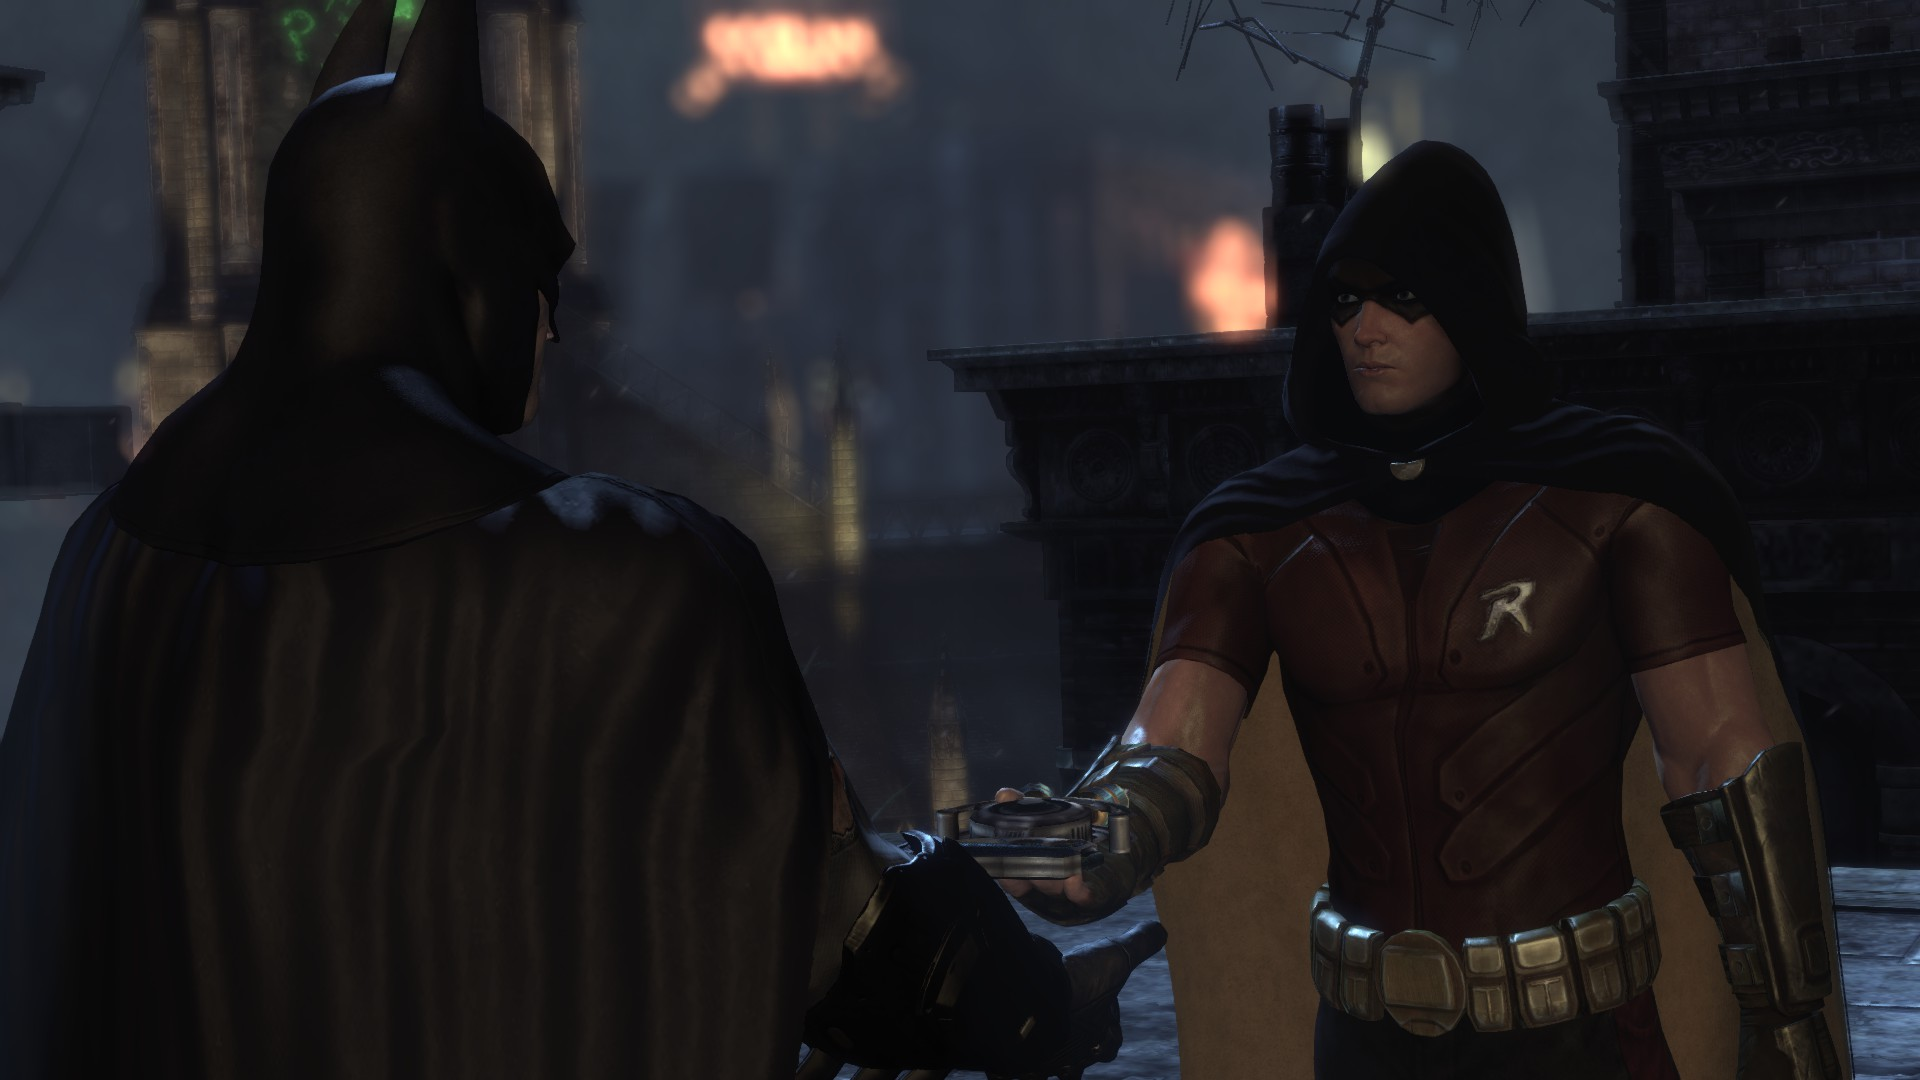 Batman Arkham City Nightwing And Robin Batman Arkham City Nightwing